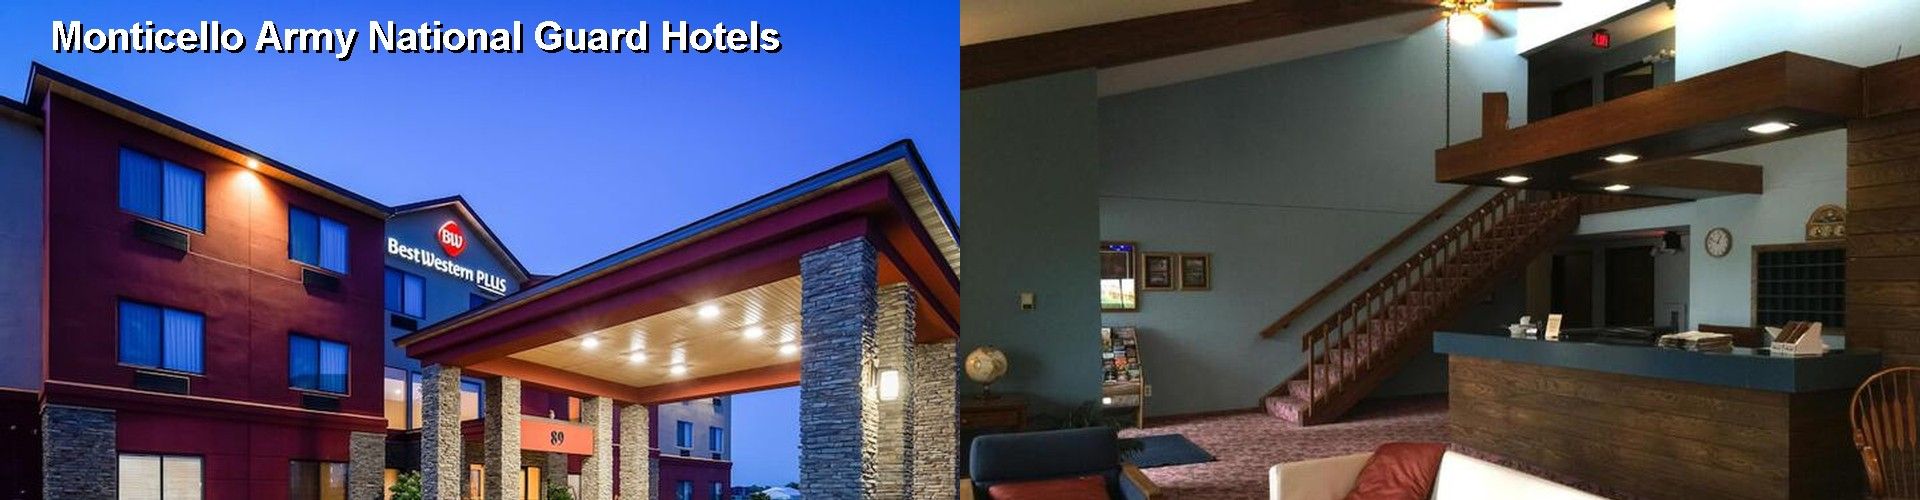 5 Best Hotels near Monticello Army National Guard